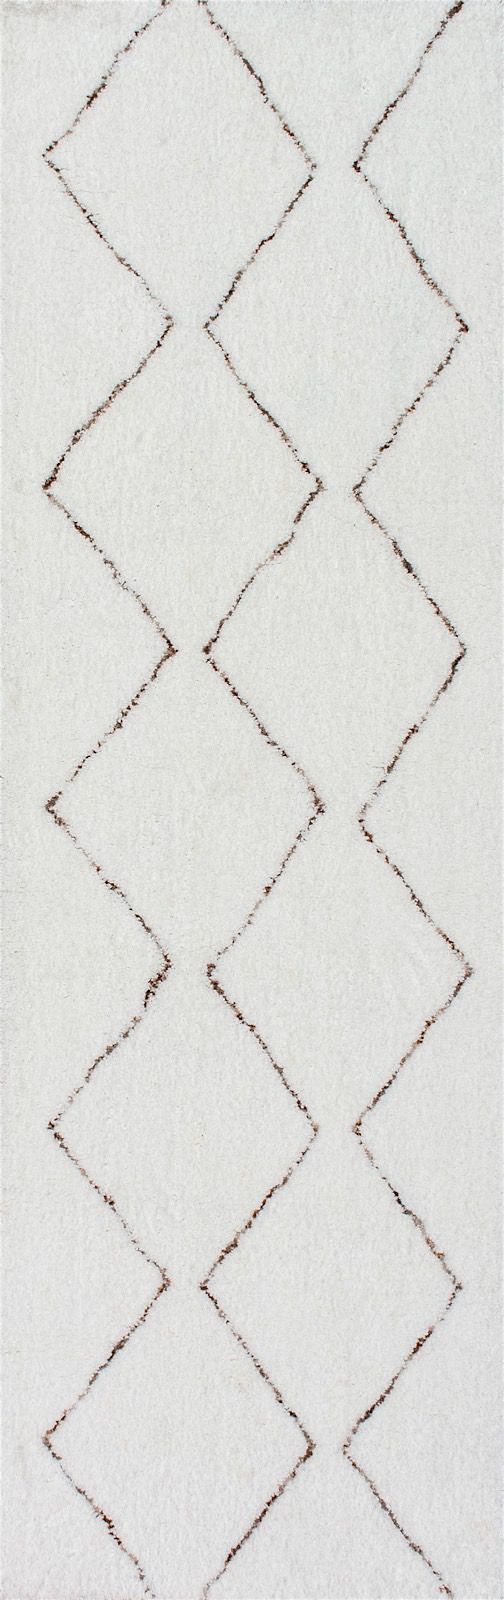 nuloom corinth shag area rug collection